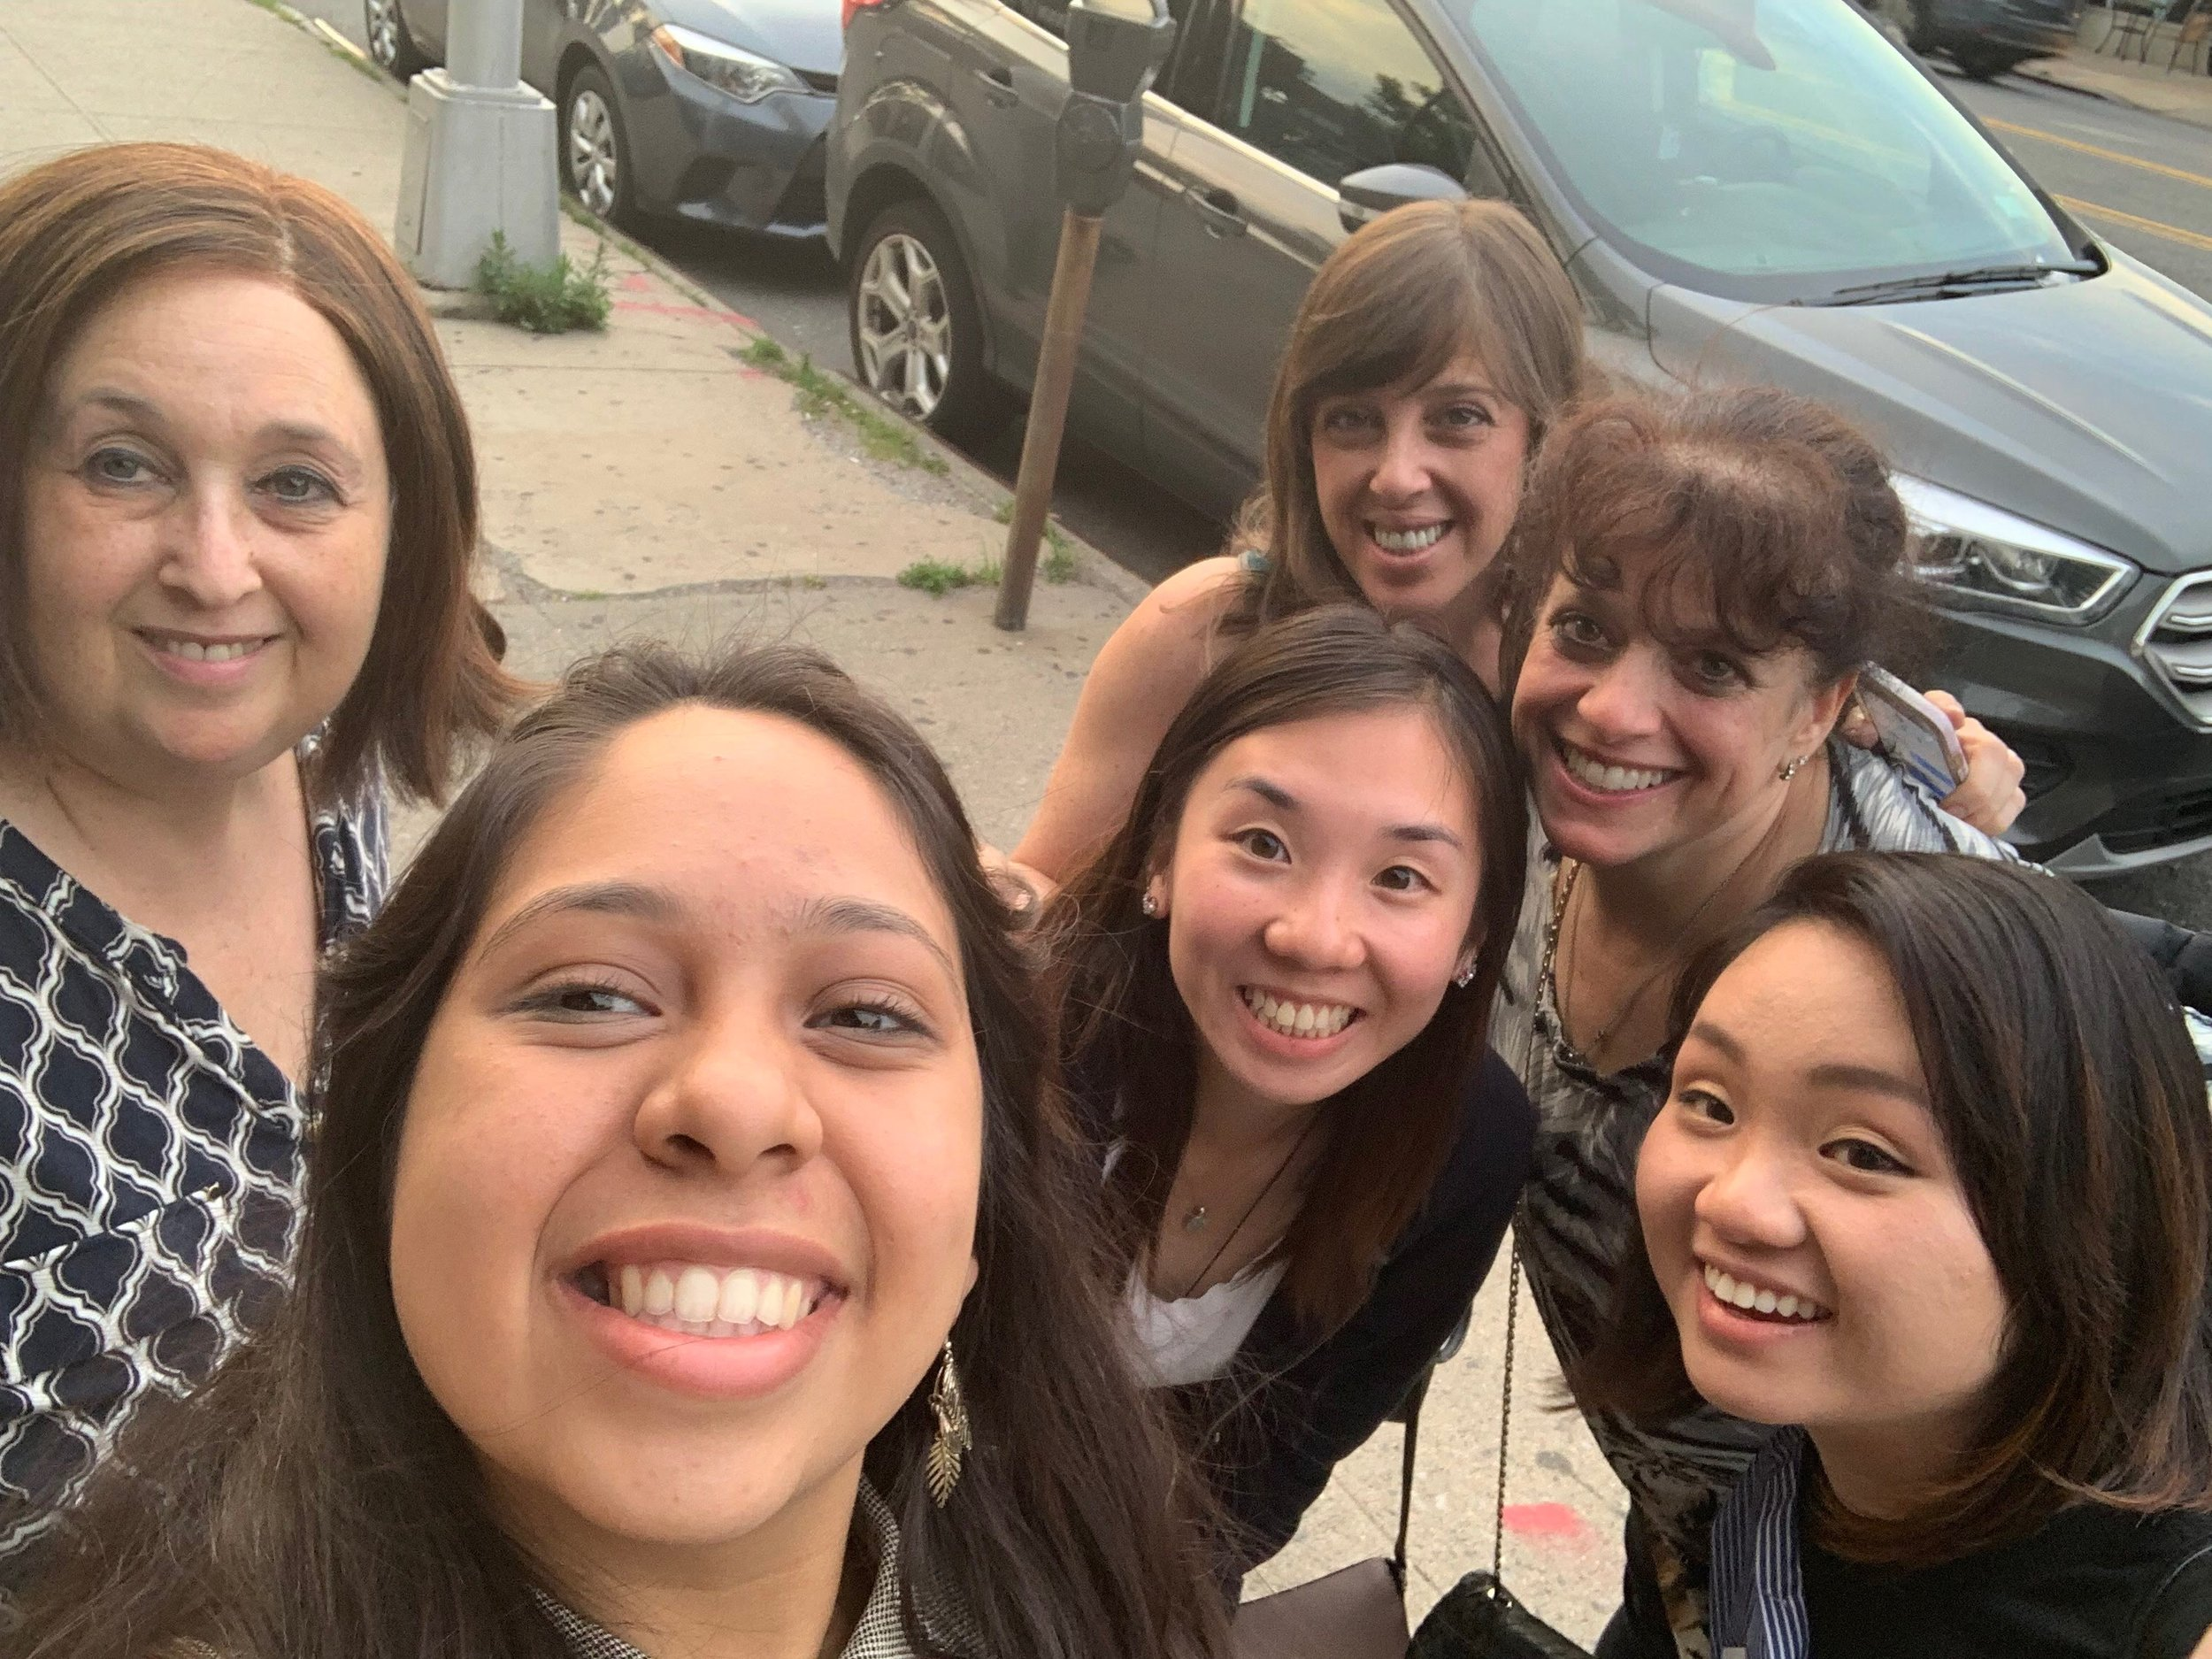 From left to right: Hope Cohen, Kristel Velez, Tiffany Tang Yu, Michele Ruocco, Jodi Hollander, and Min Lu.